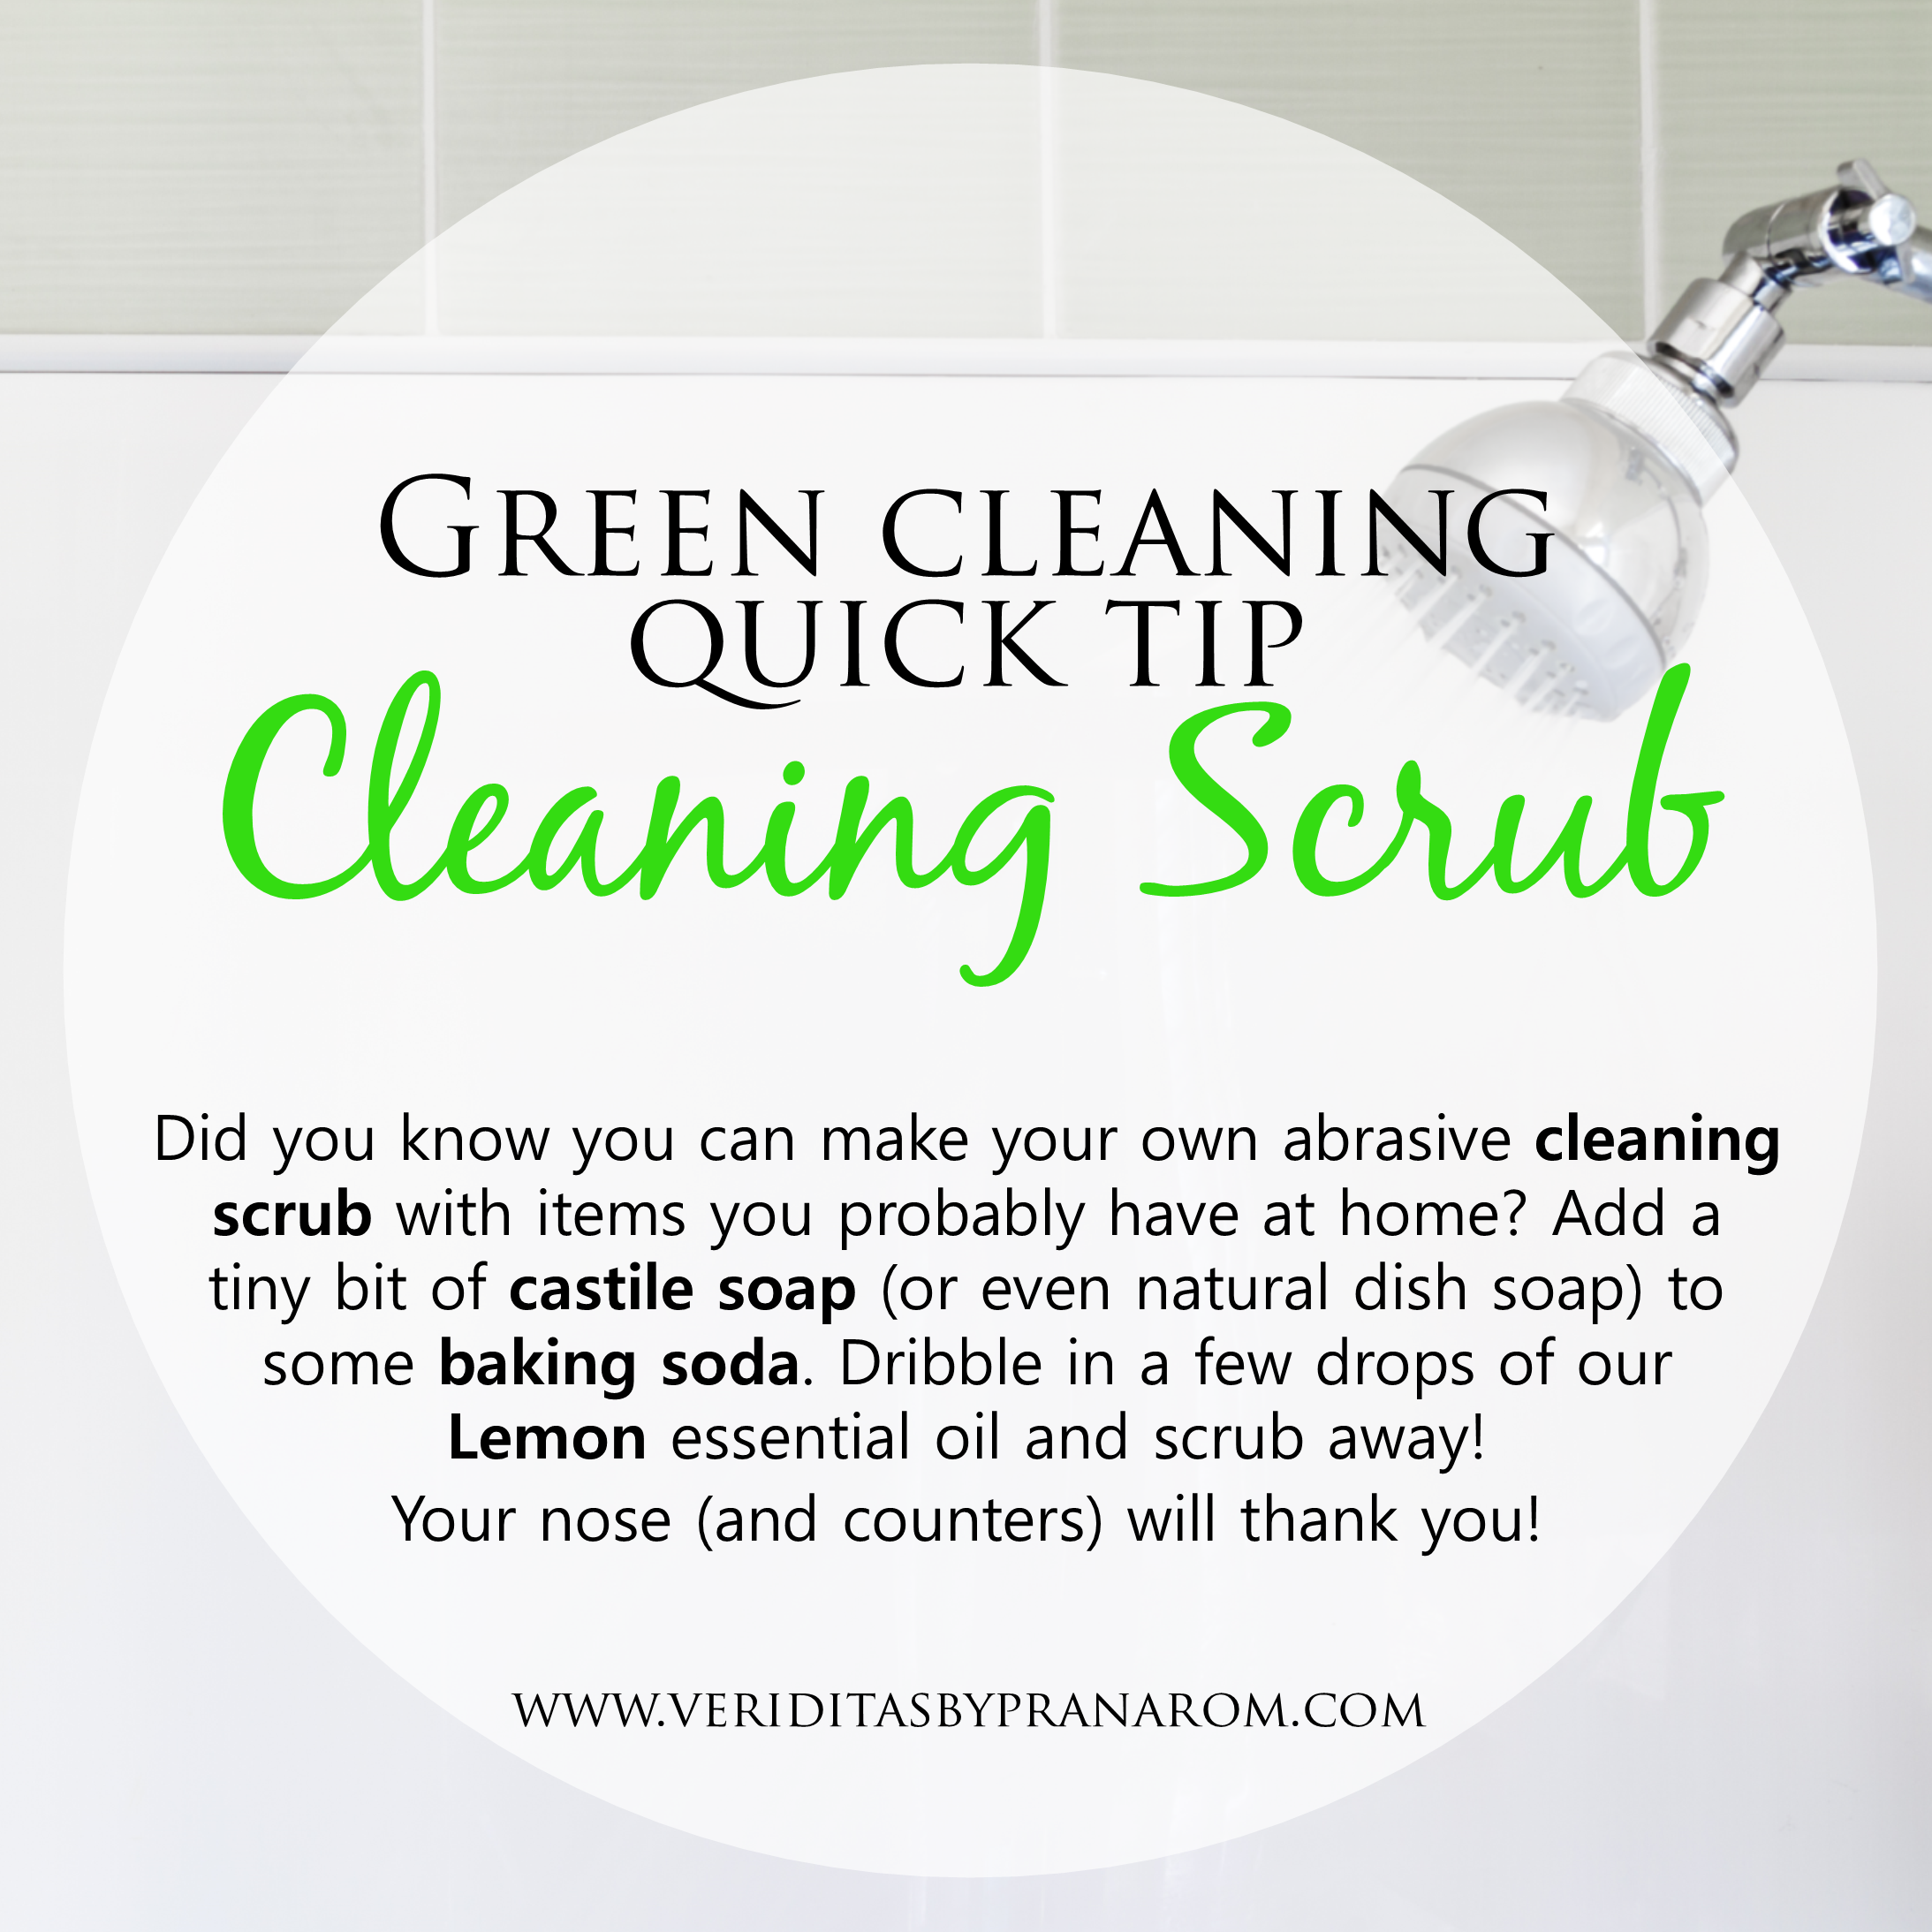 Quick Green Cleaning Tip Of The Day With Images Natural Dish